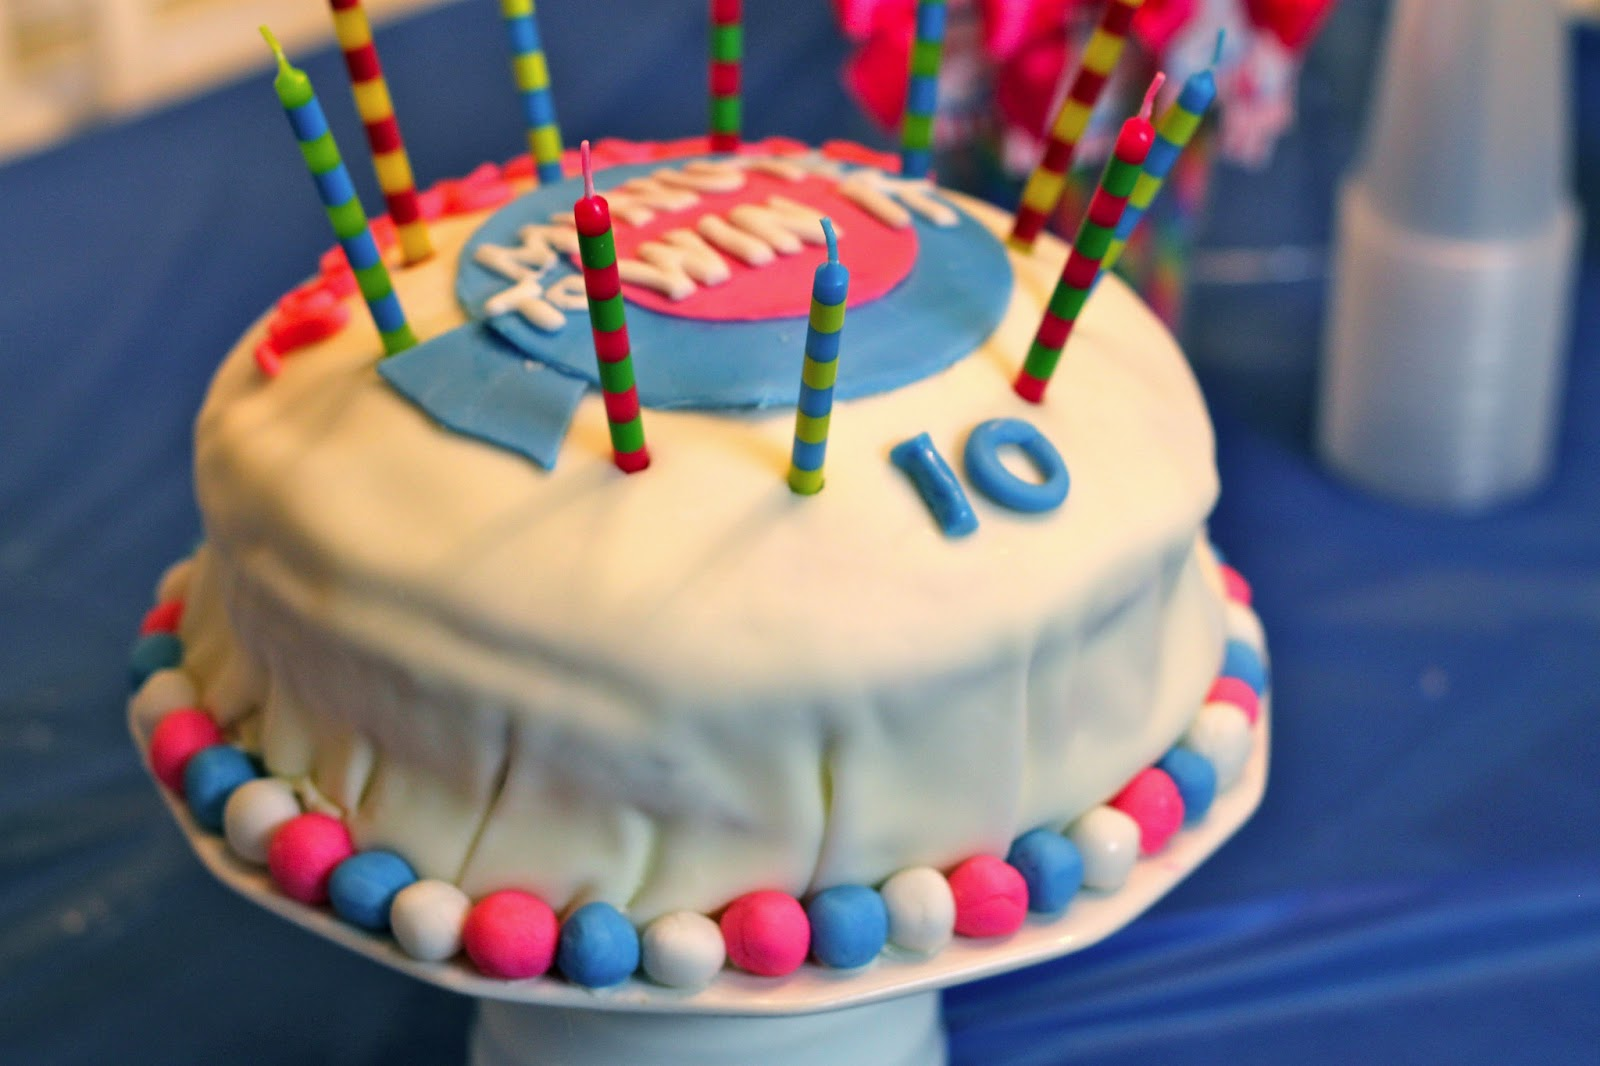 Cake Decorating Ideas For 10 Year Old Boy : Blair s Blessings: 10 Year-Old Minute to Win It Birthday Party